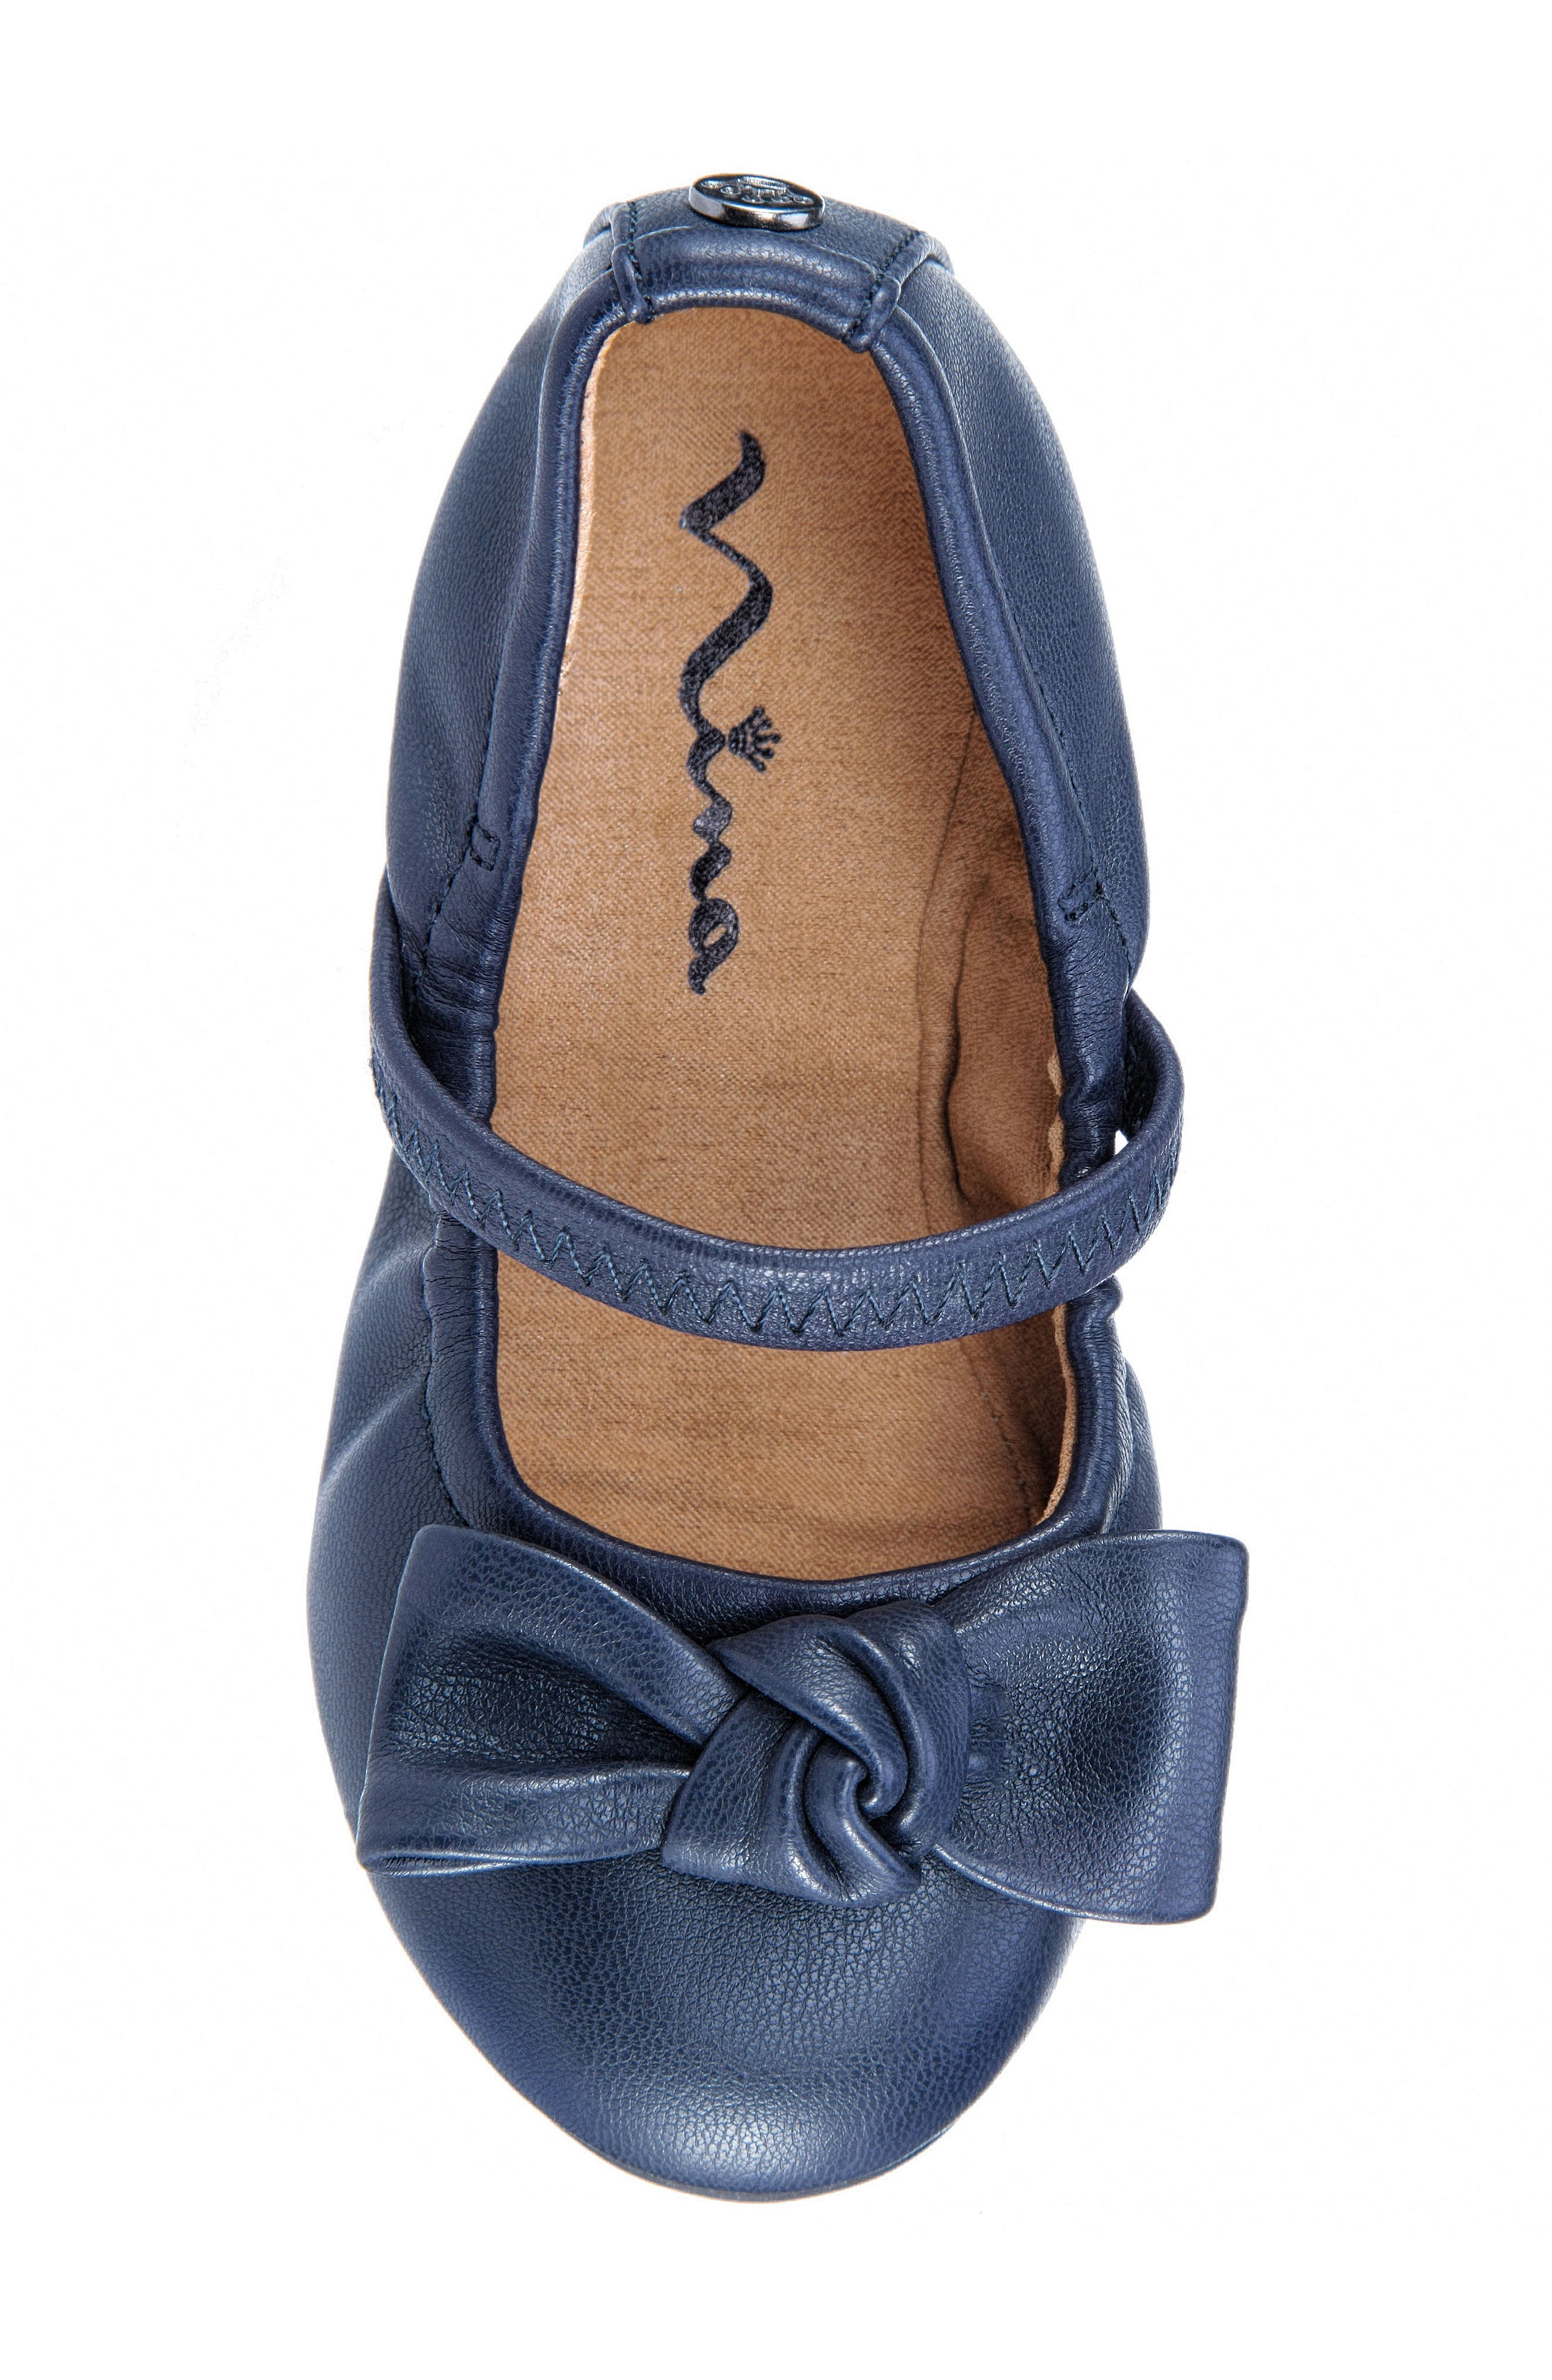 Karla Bow Ballet Flat,                             Alternate thumbnail 5, color,                             Navy Smooth Blue